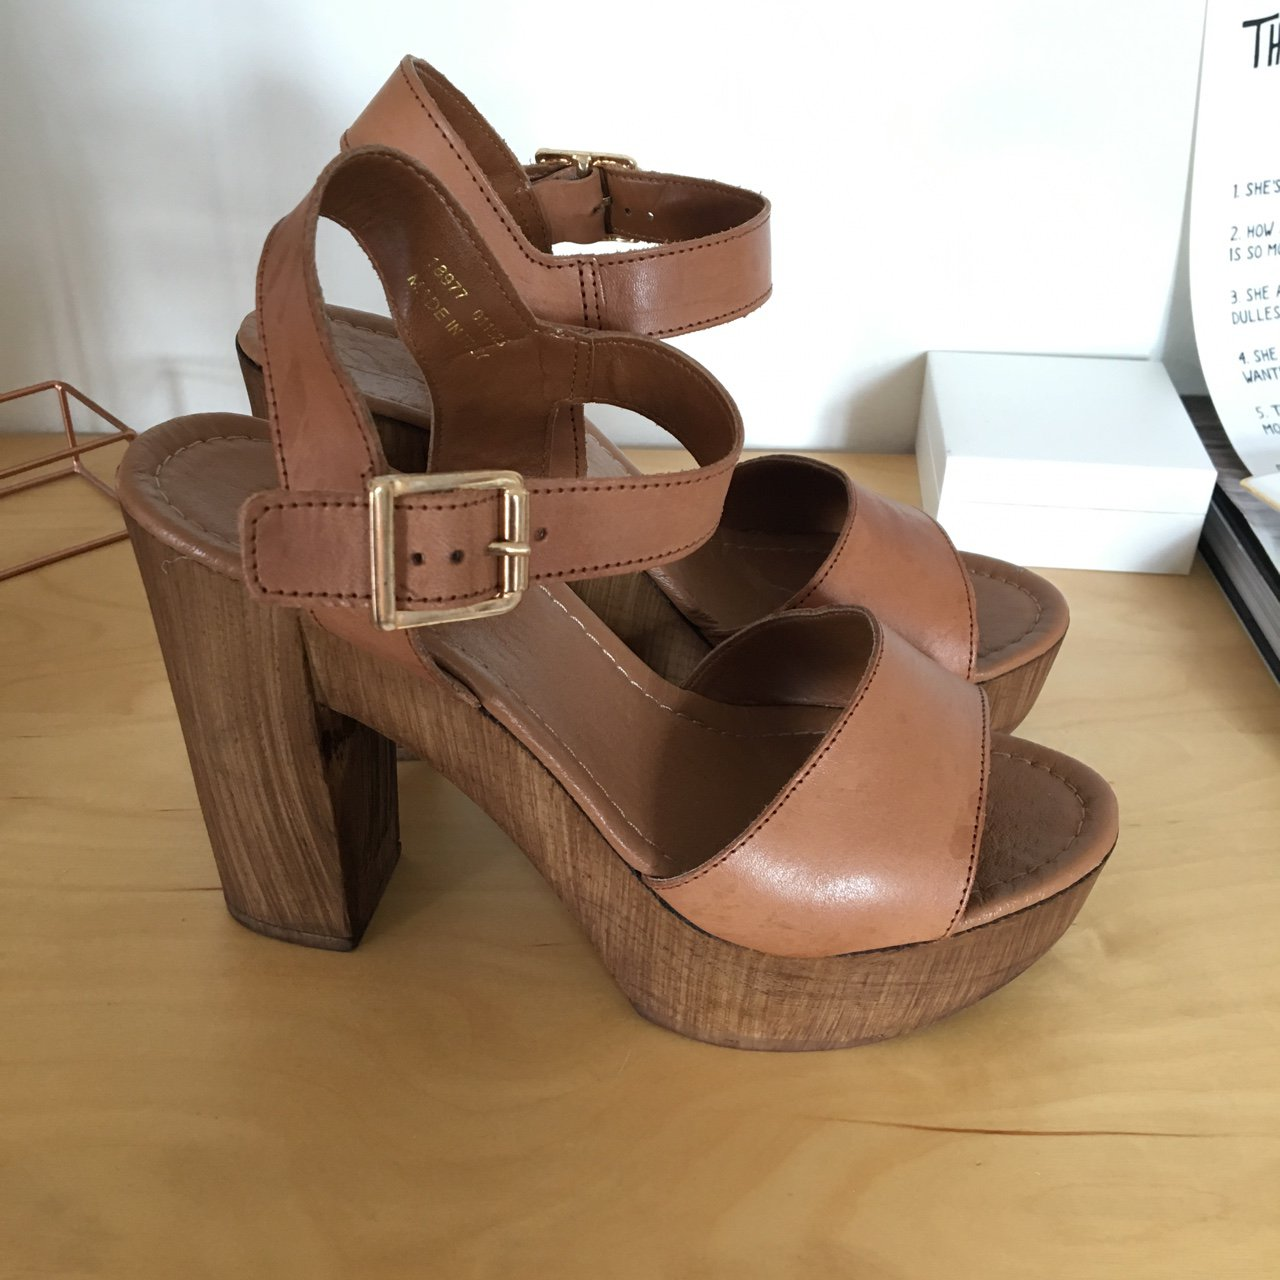 d2cd9640065 Office heeled sandals. Really comfy